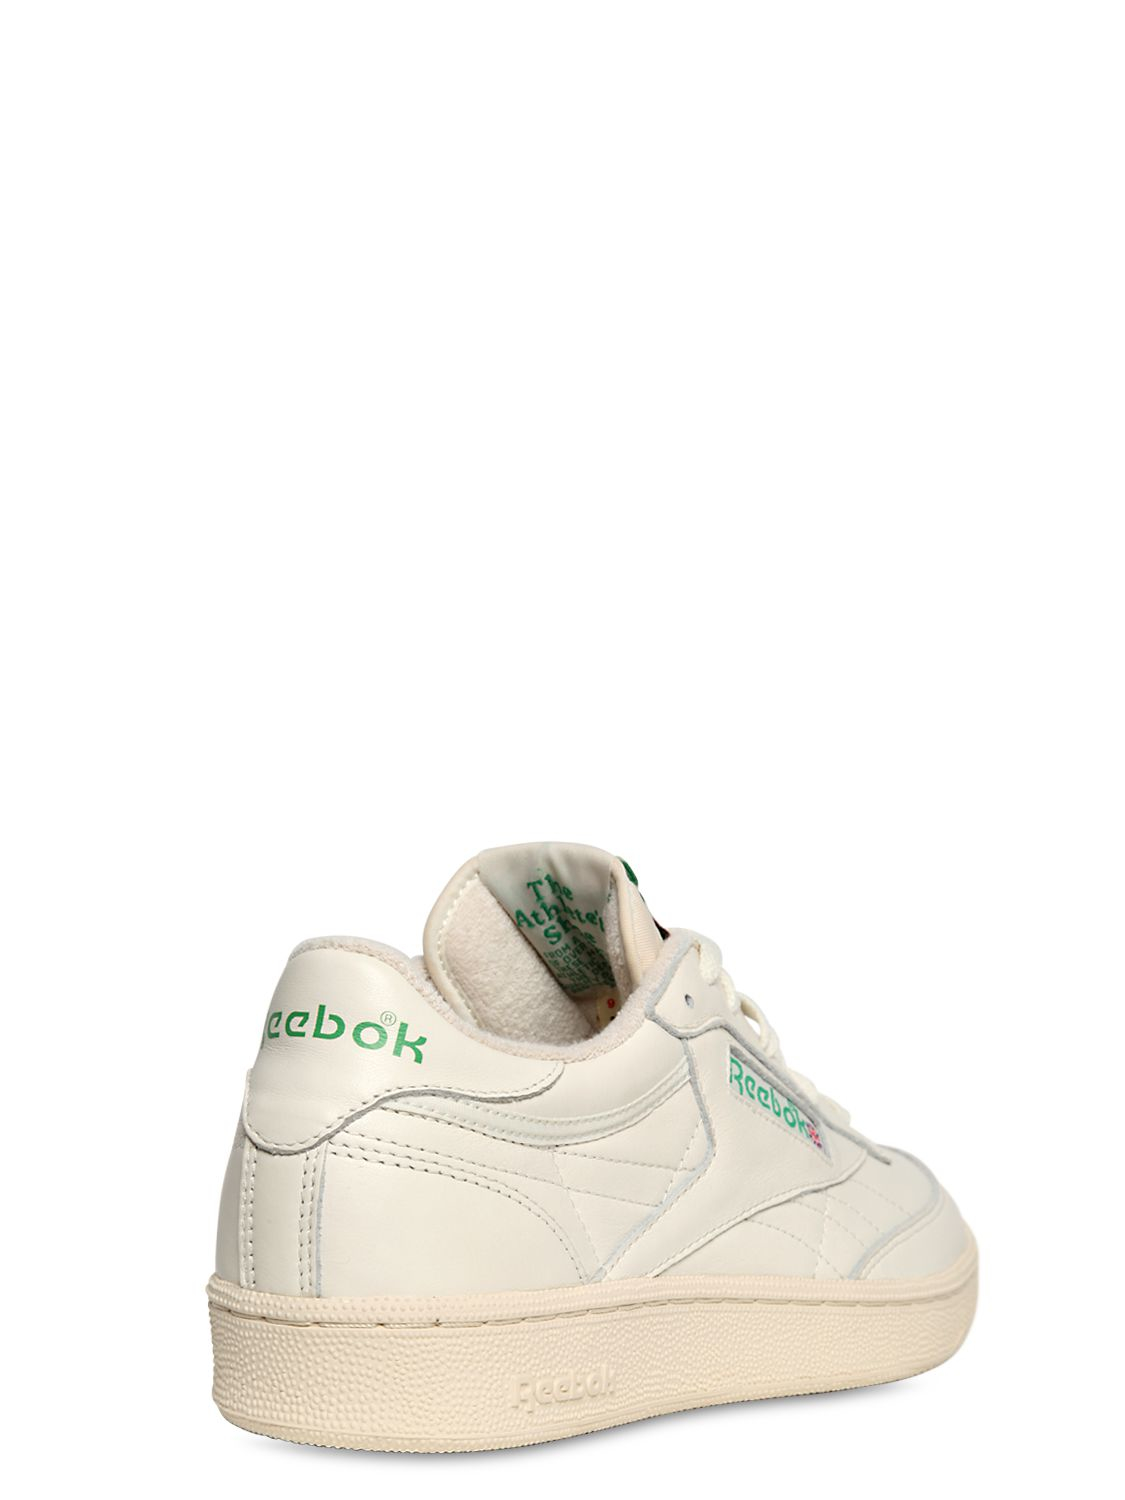 c24baaa10fe hot lyst reebok club c 85 vintage leather low top sneakers in white for men  7d294